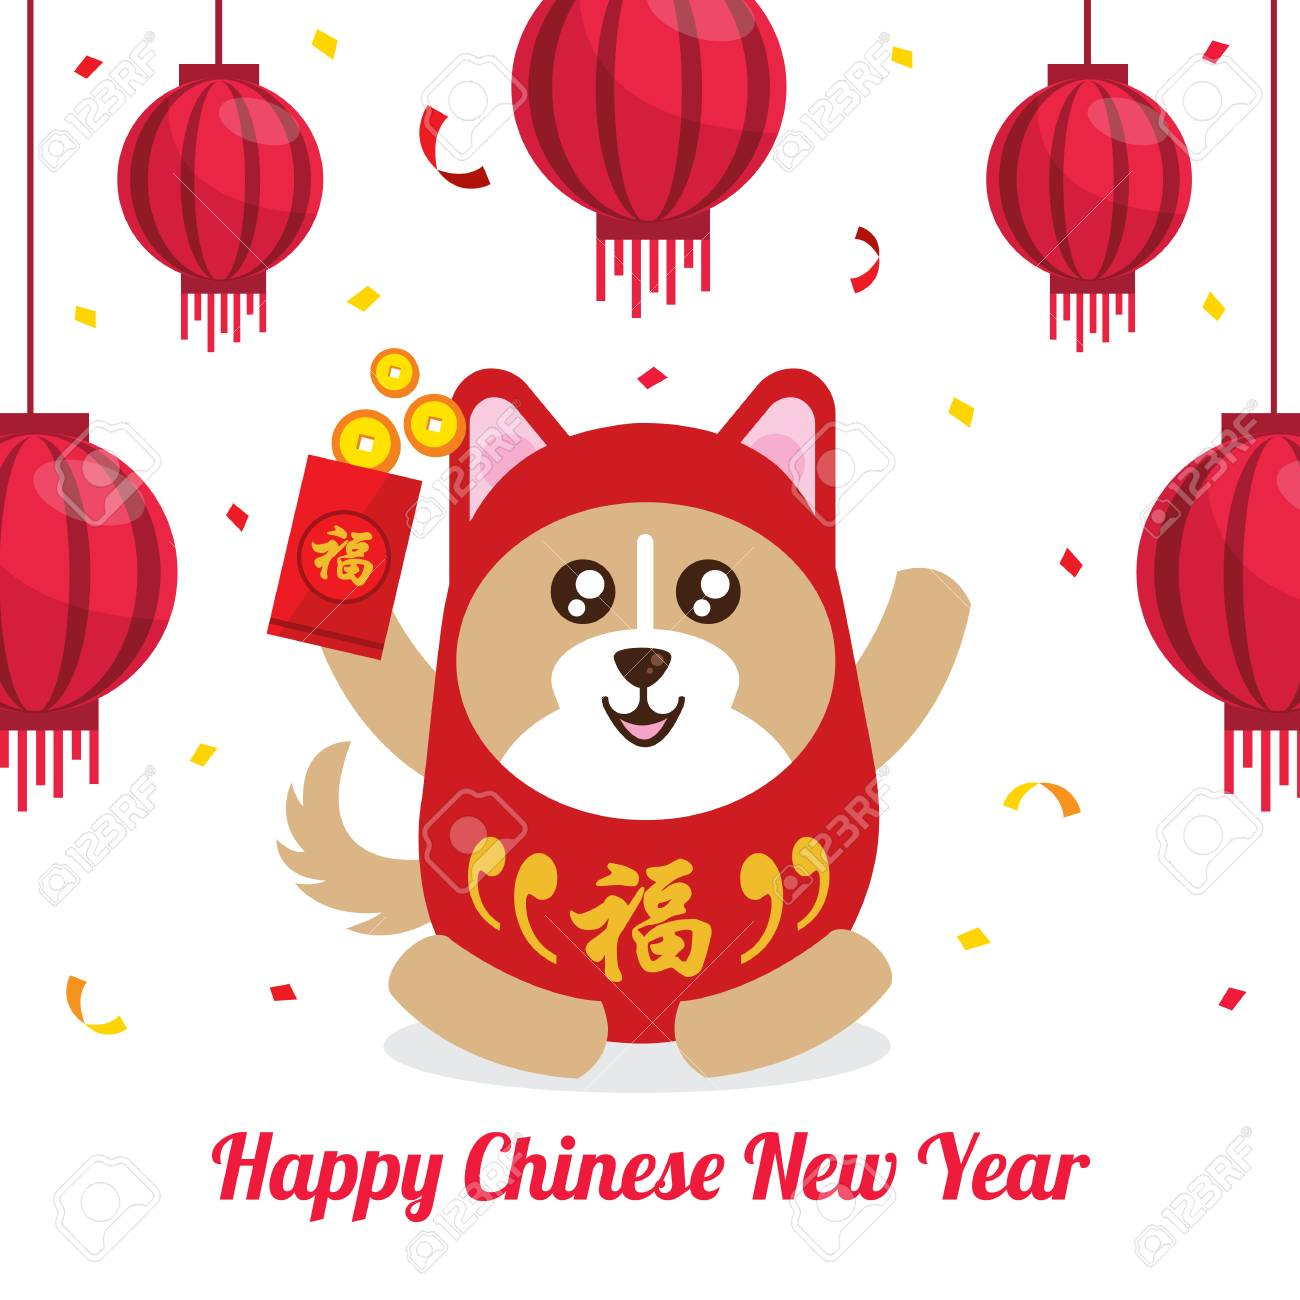 Chinese New Year Greeting Card Celebrate Year Of Dog Royalty Free